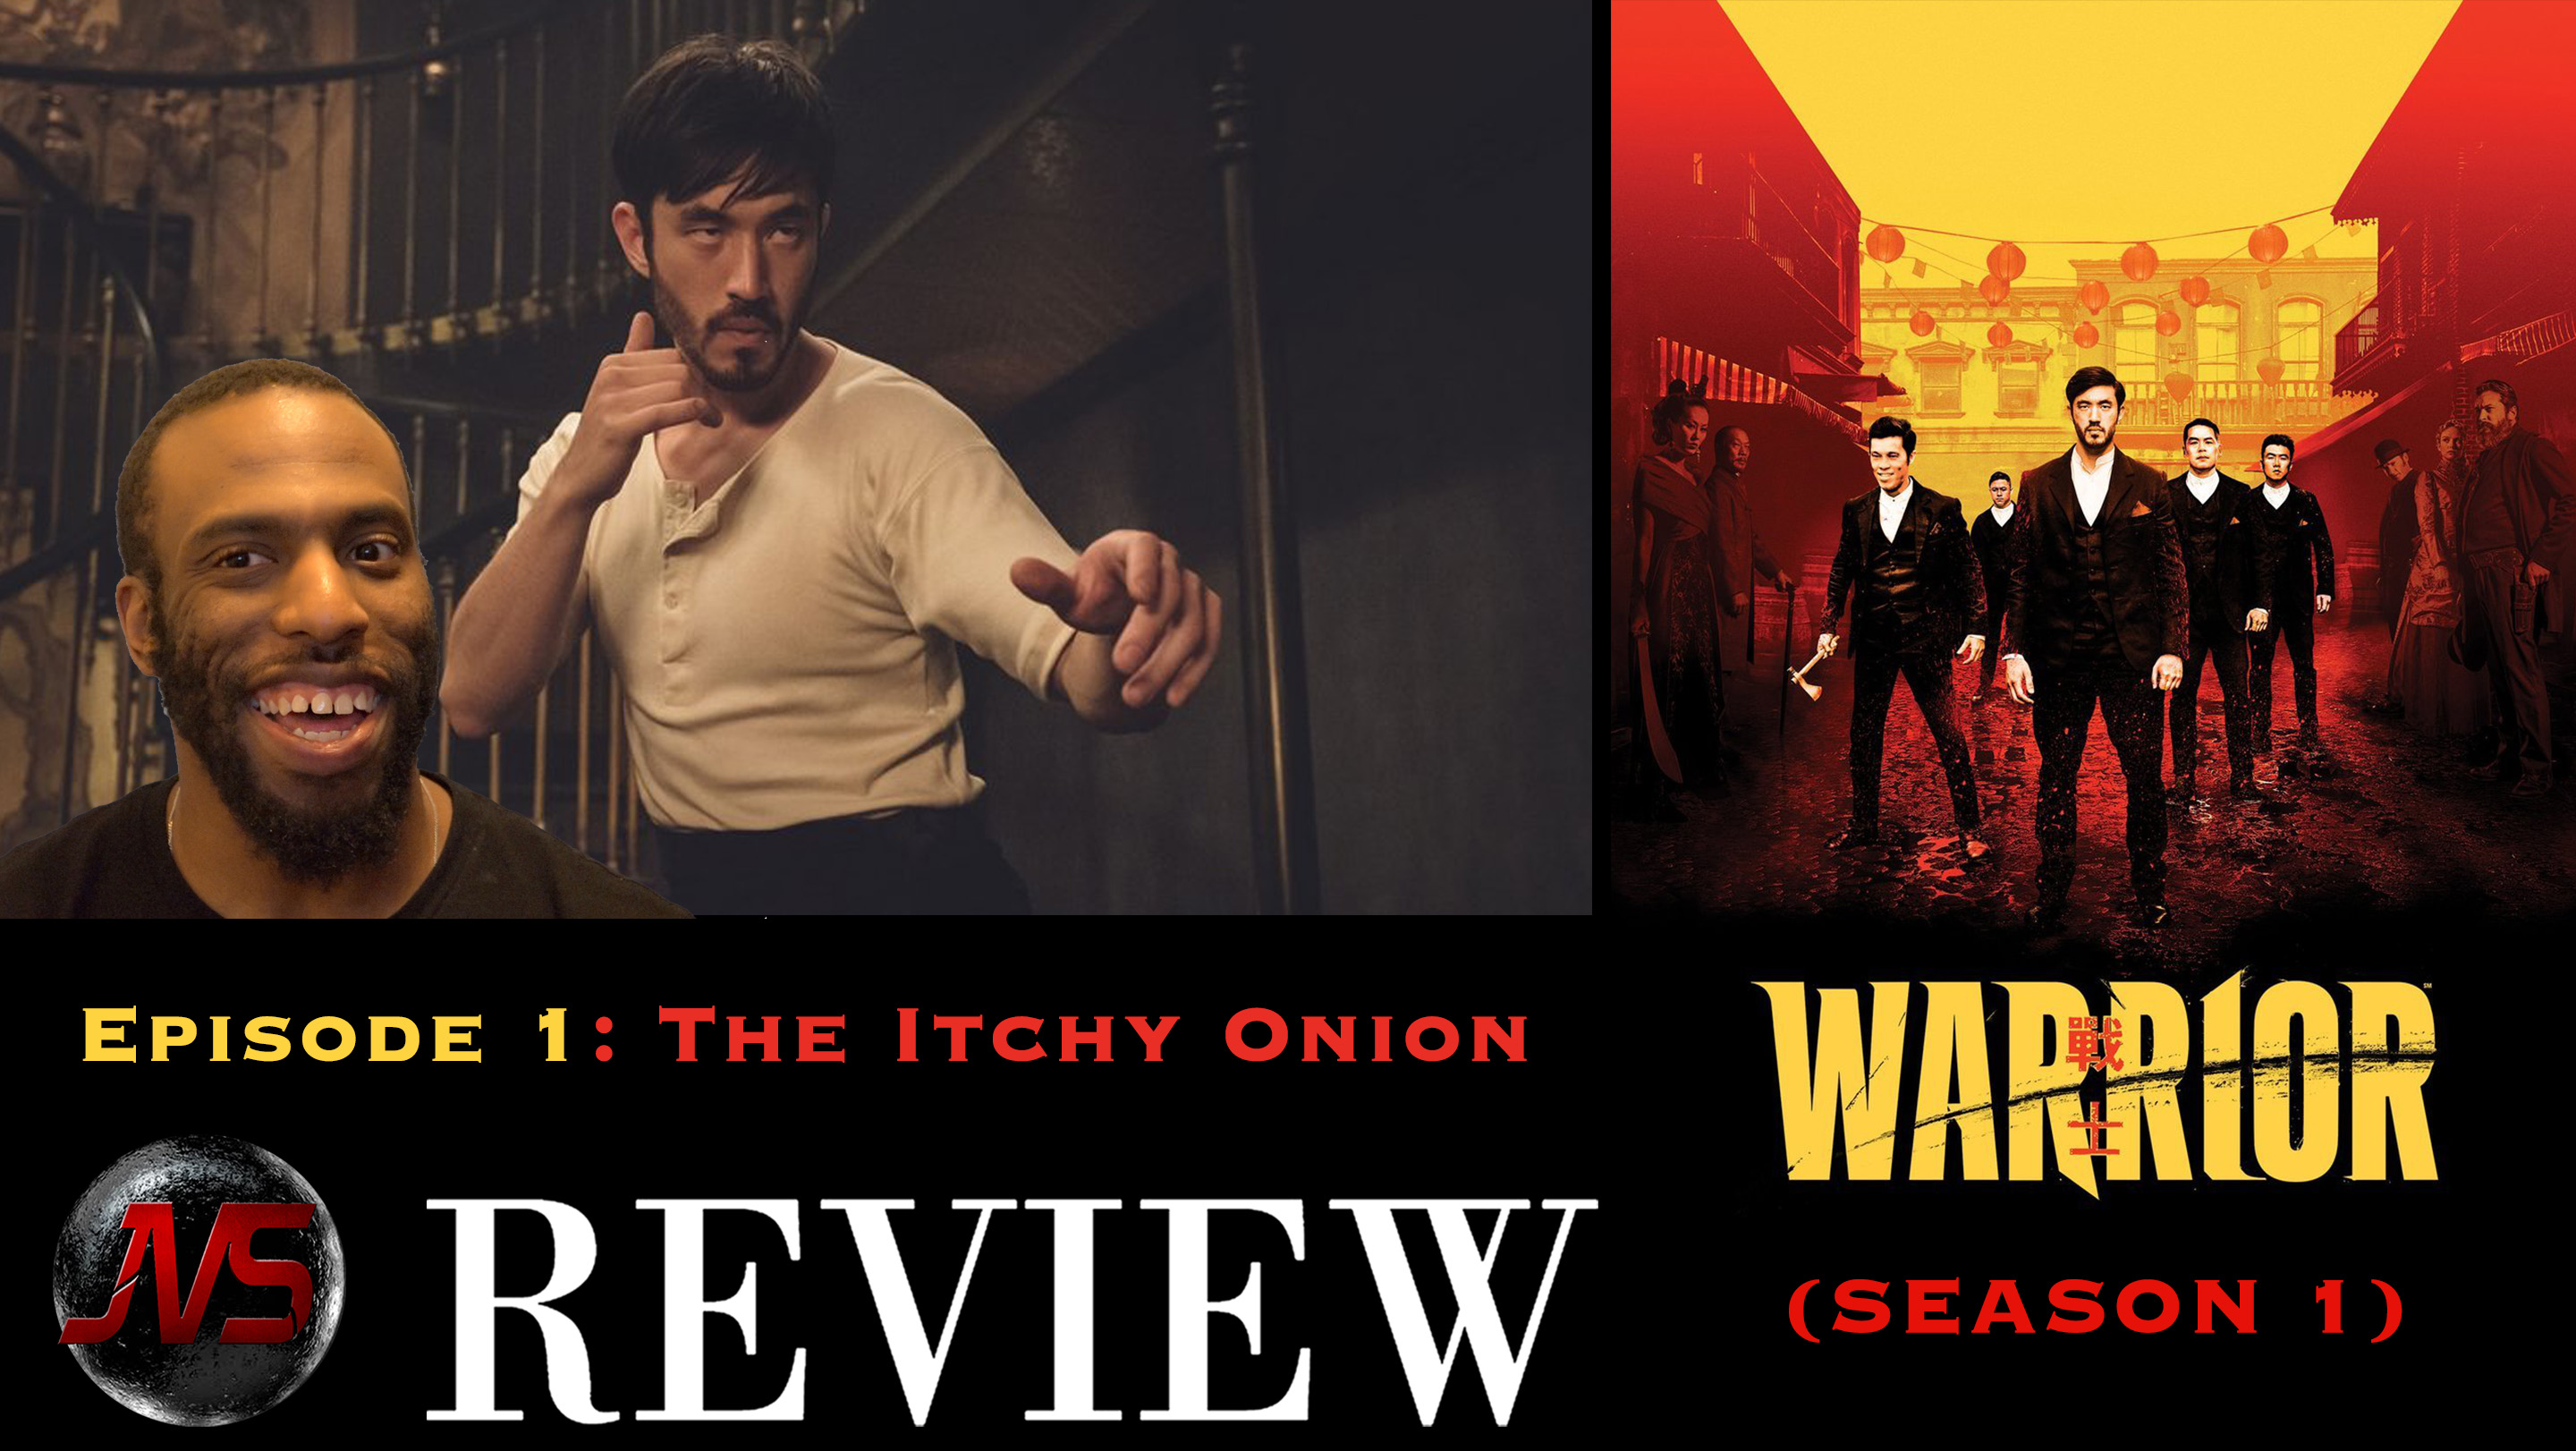 """WARRIOR (Cinemax) Episode 1 """"THE ITCHY ONION"""" 